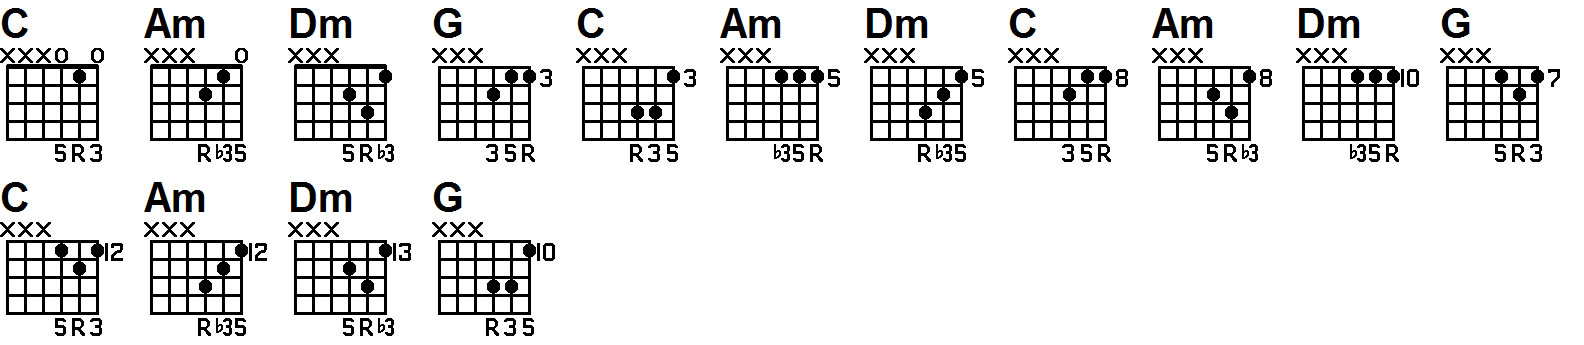 guitar lesson on triad 1625 chords